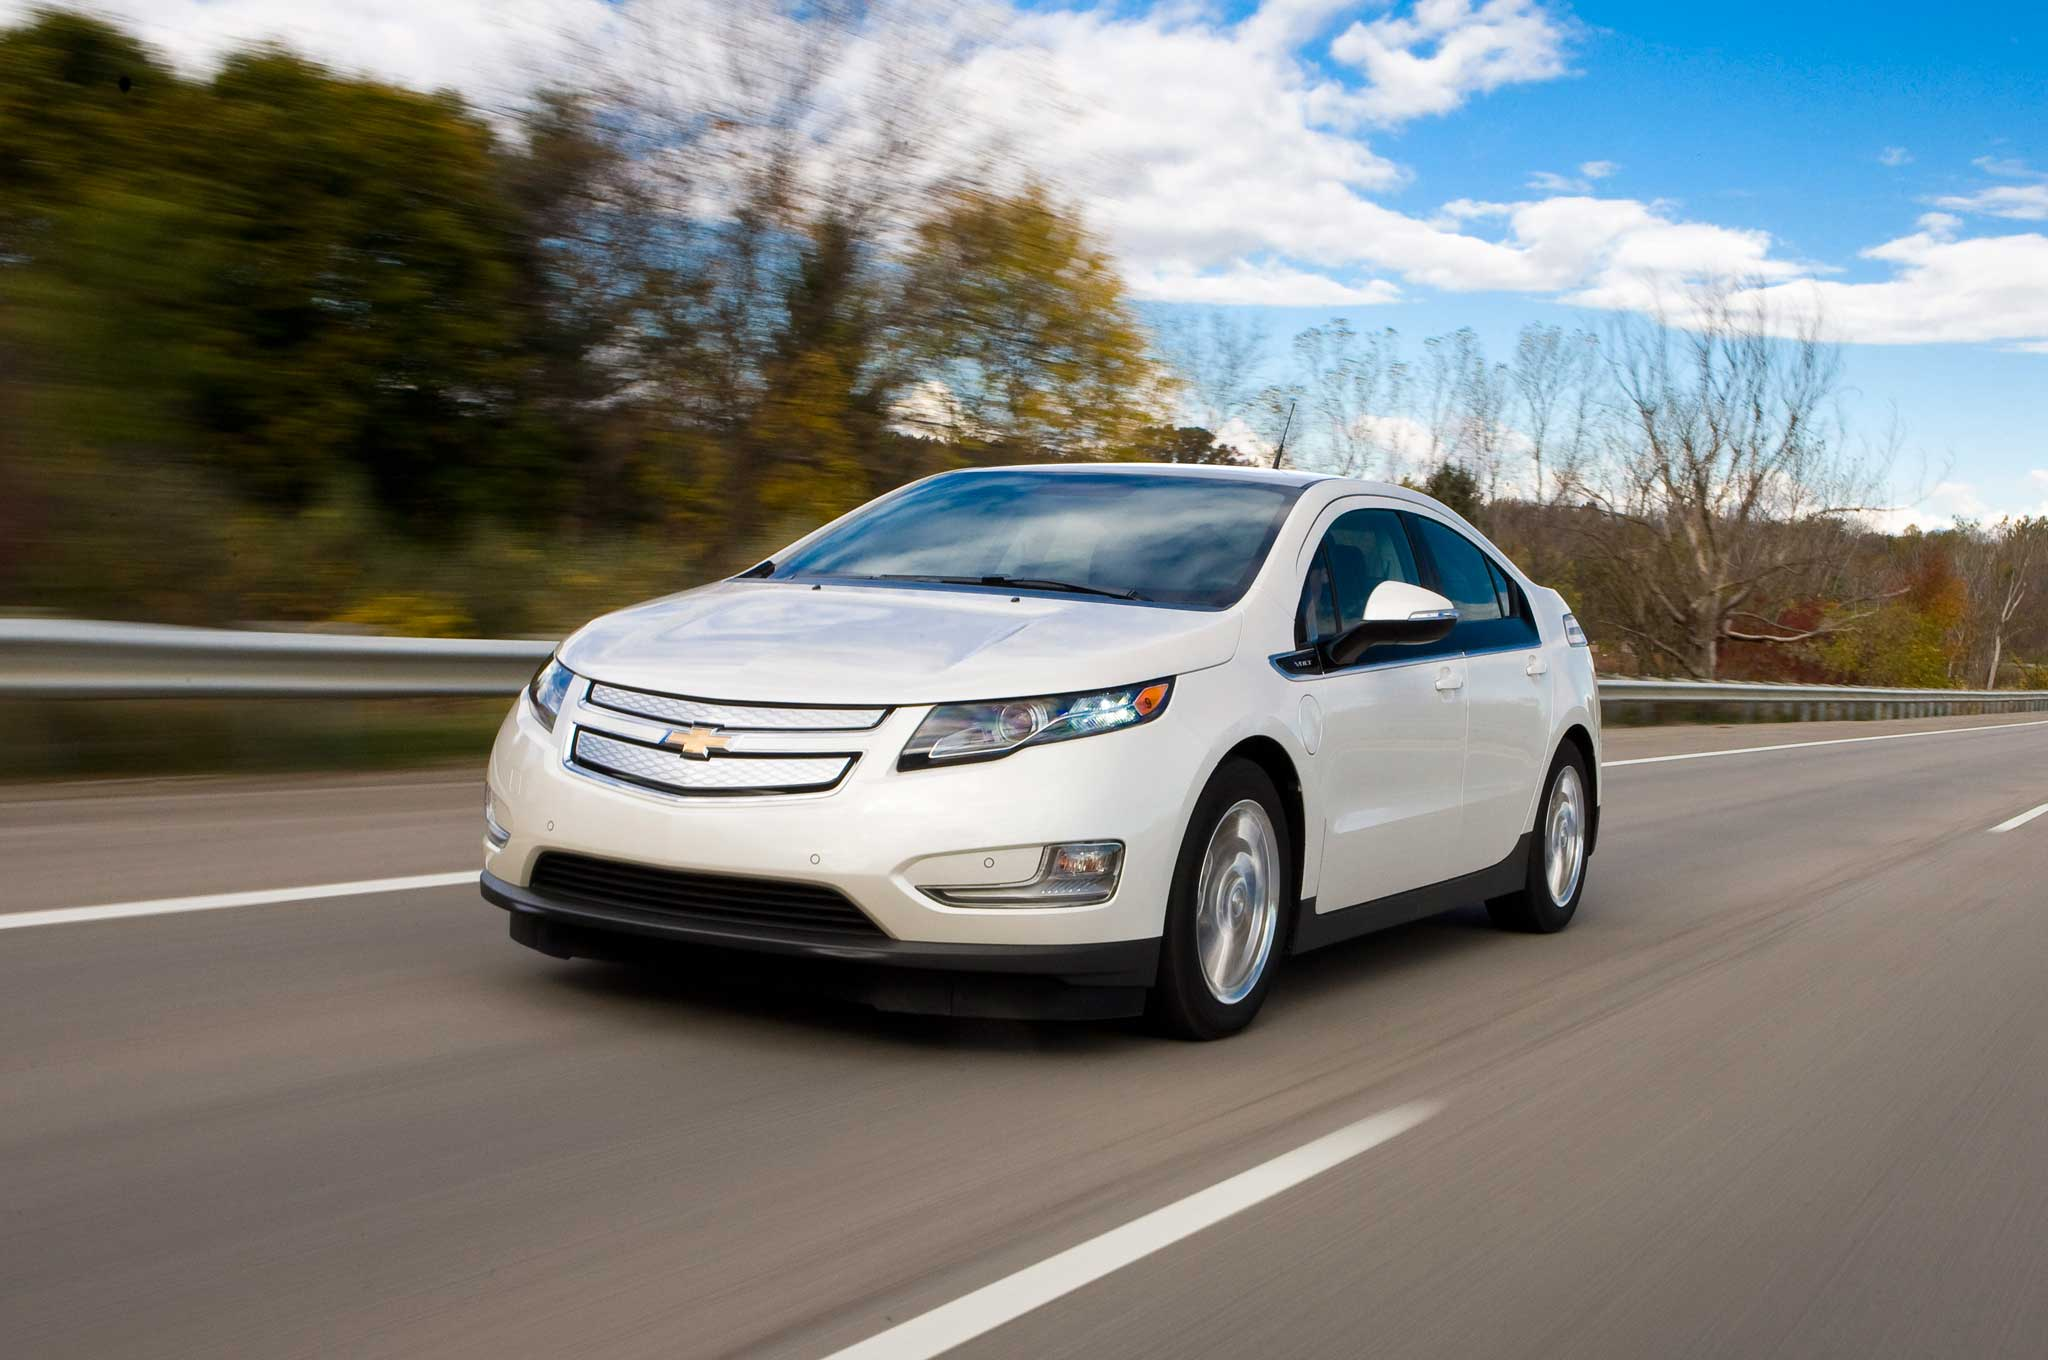 2013 Chevrolet Volt Front Three Quarter1